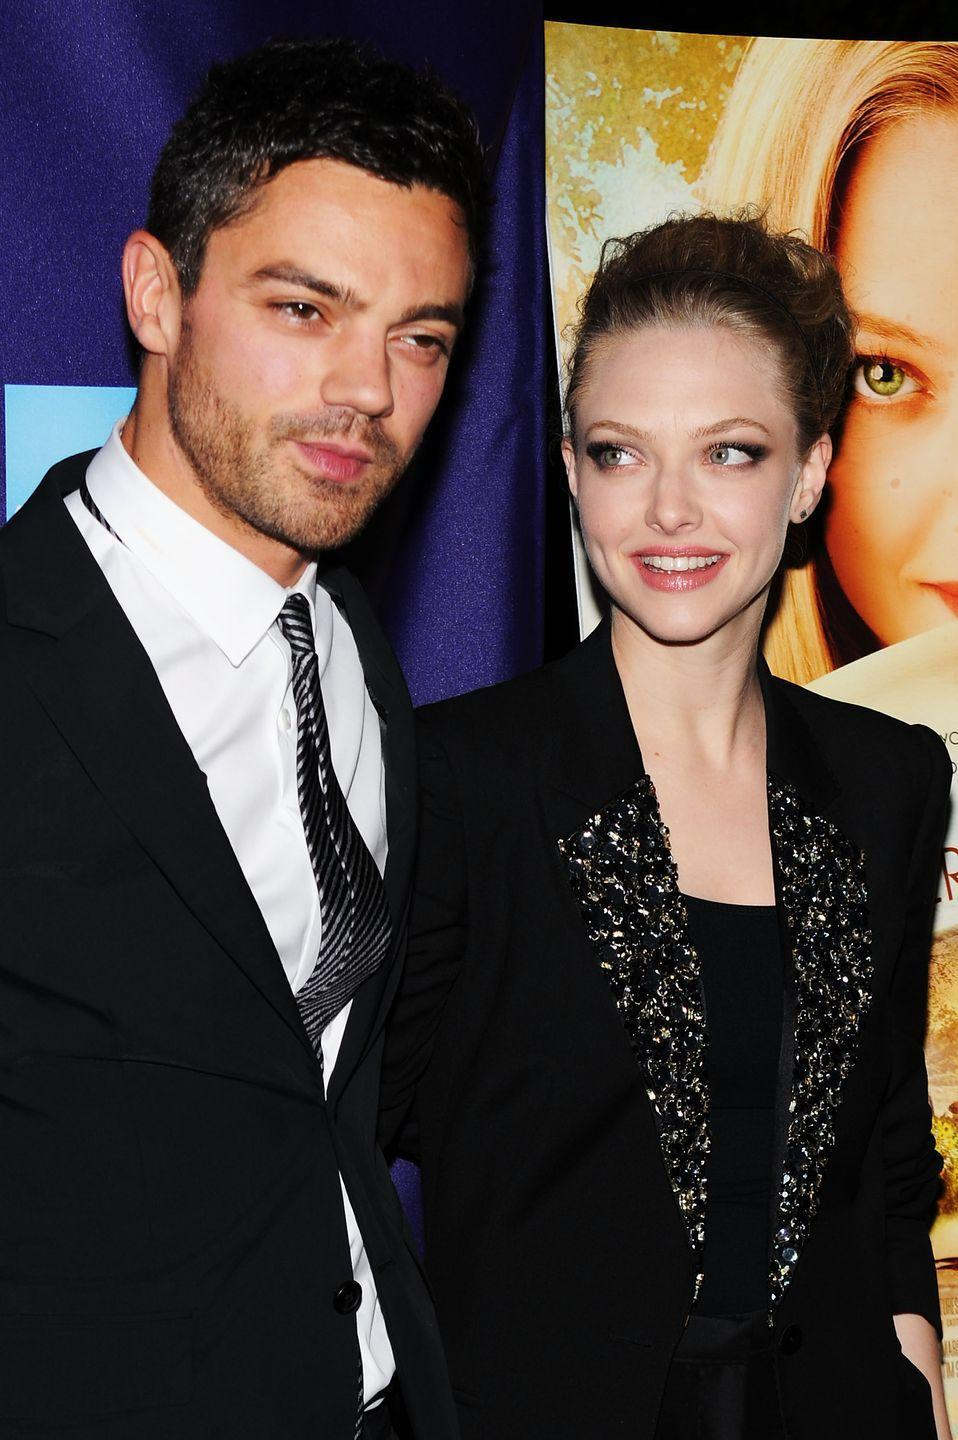 "<p>Seyfried and Cooper fell for one another on the set of <em>Mamma Mia </em>in 2007 and dated for three years before splitting. The former flames reunited in 2018 to film <em>Mamma Mia 2 </em>and it sounds like there are no hard feelings: ""We knew we were going to be working together [again] on set, going back to a part, which was certainly going to remind us of 10 years earlier,"" Cooper told <a href=""https://attitude.co.uk/article/dominic-cooper-and-zander-hodgson-cover-attitudes-august-issues/18538/"" rel=""nofollow noopener"" target=""_blank"" data-ylk=""slk:Attitude Magazine"" class=""link rapid-noclick-resp""><em>Attitude Magazine</em></a>. ""It was a pleasant atmosphere. It was really interesting to see how different our lives are after 10 years<em>.""</em></p>"